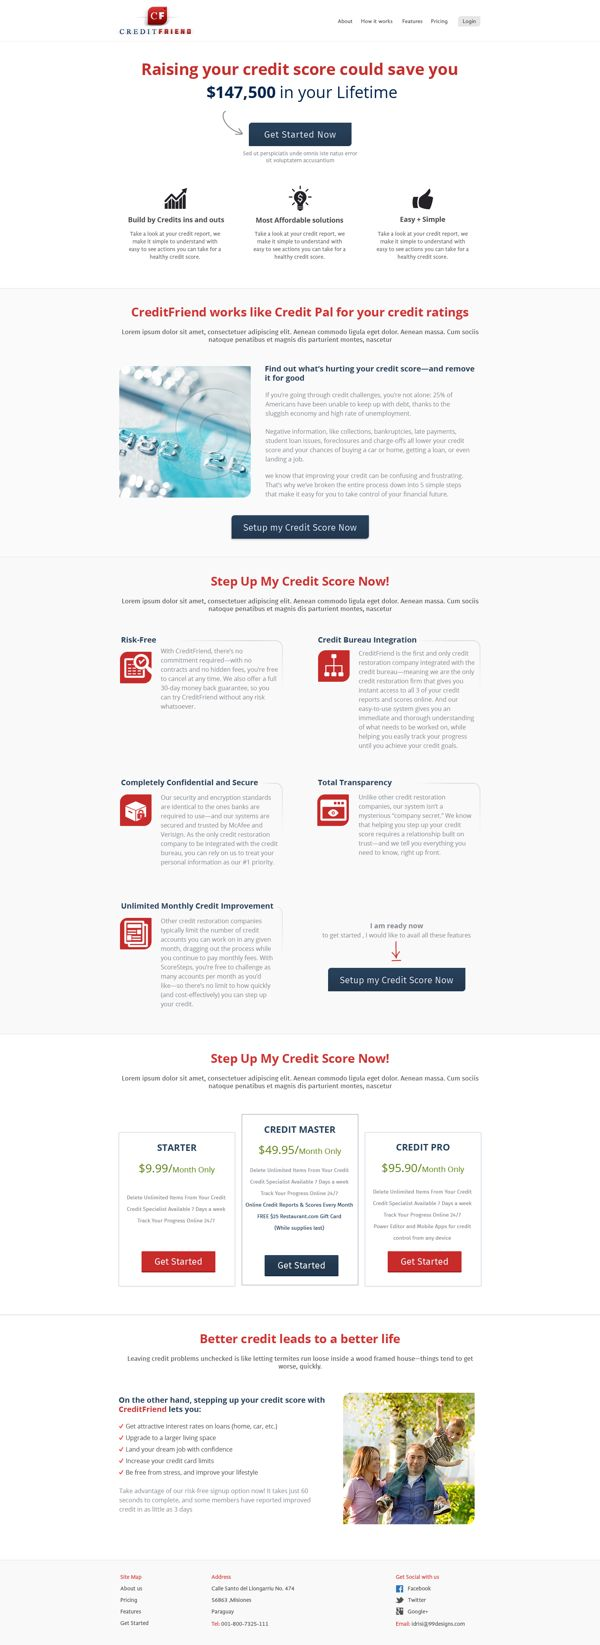 CreditFriend.com Web Design Contest by Ahsan Idrisi, via Behance